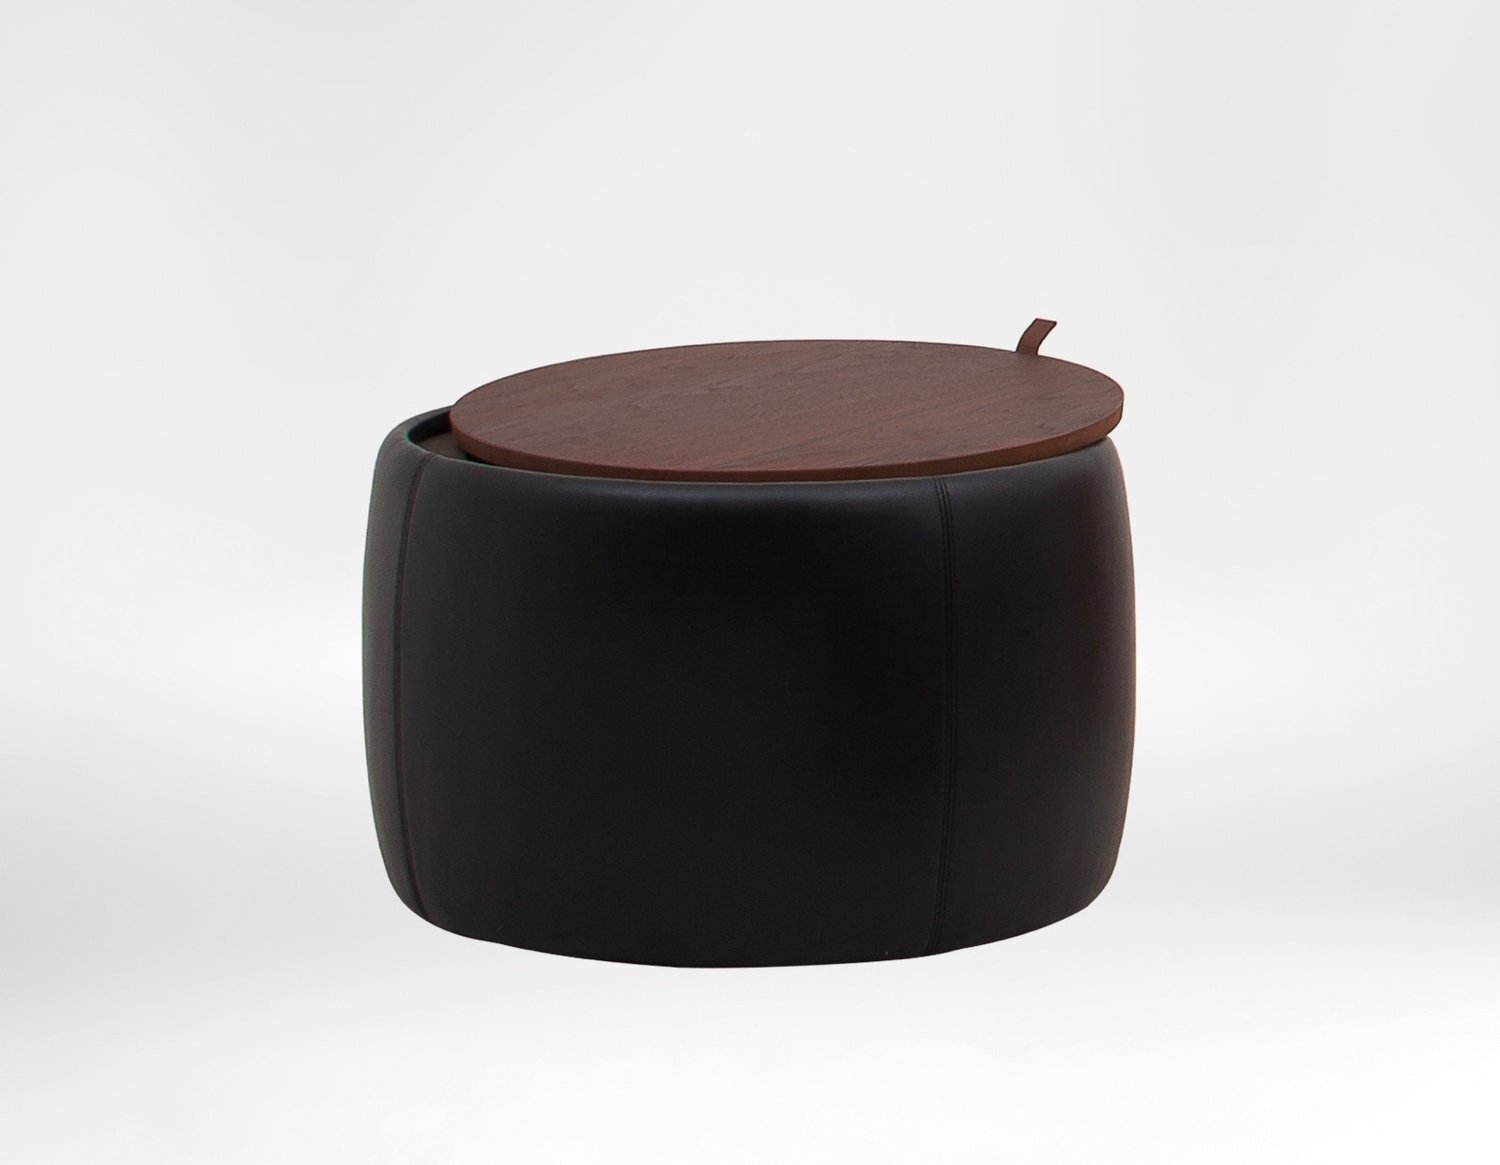 Drum ottoman - Playful and exuberant in design, the Drum Ottoman is an exciting and adaptable piece.